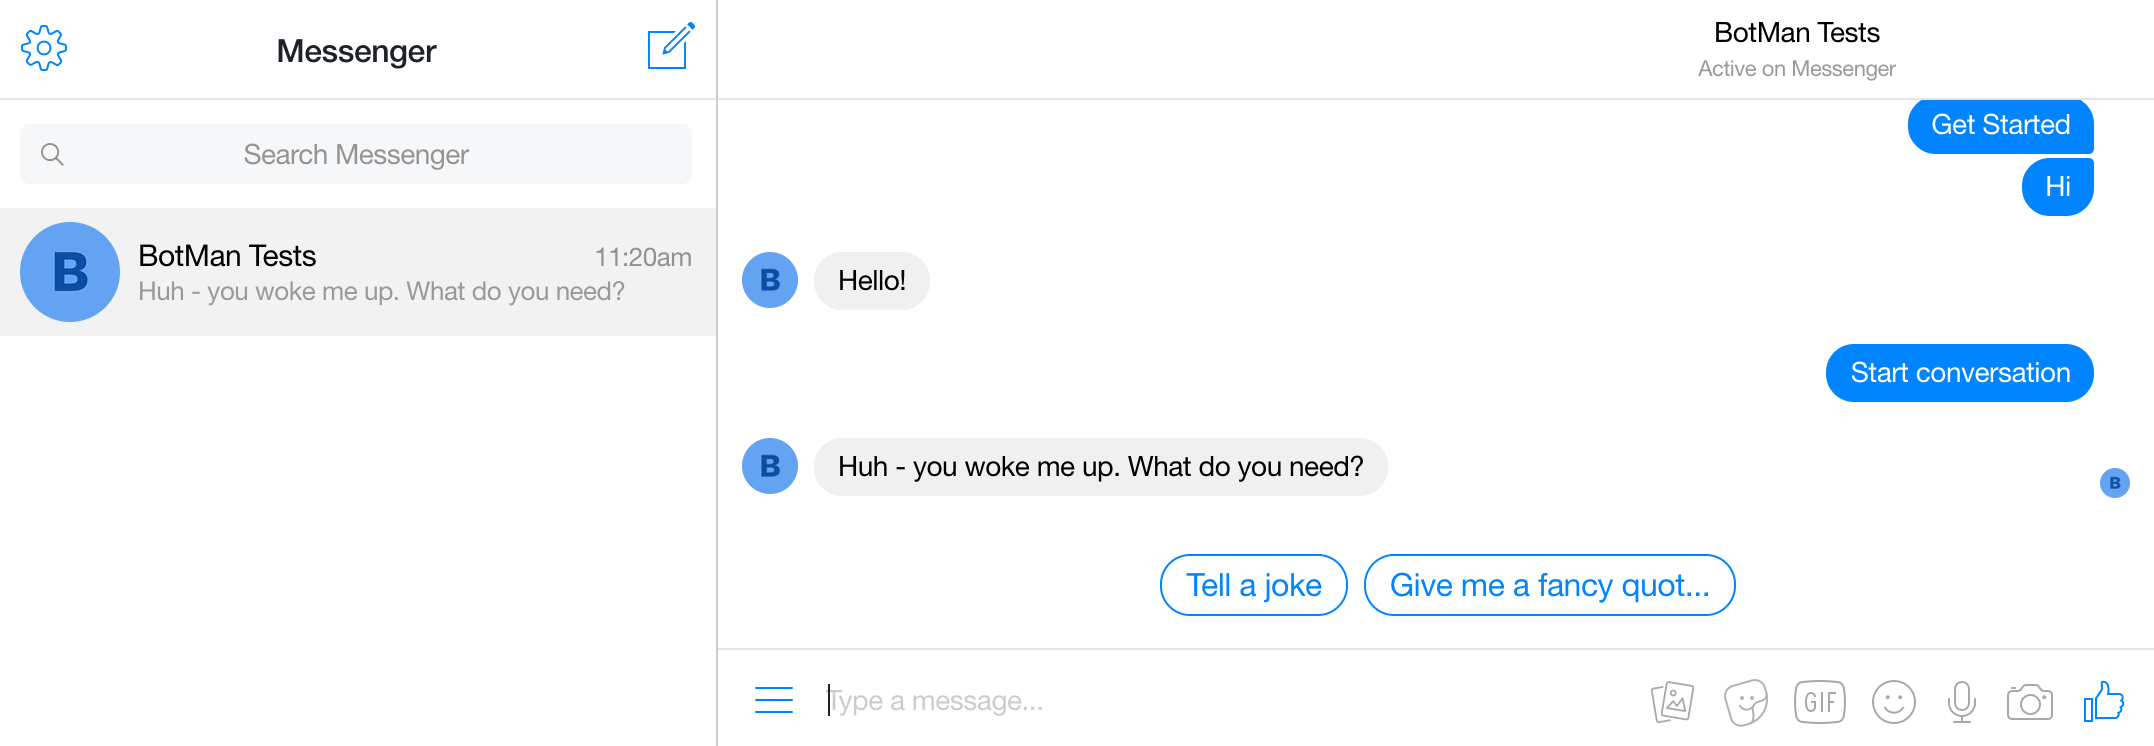 Screenshot showing how to test the BotMan example conversation